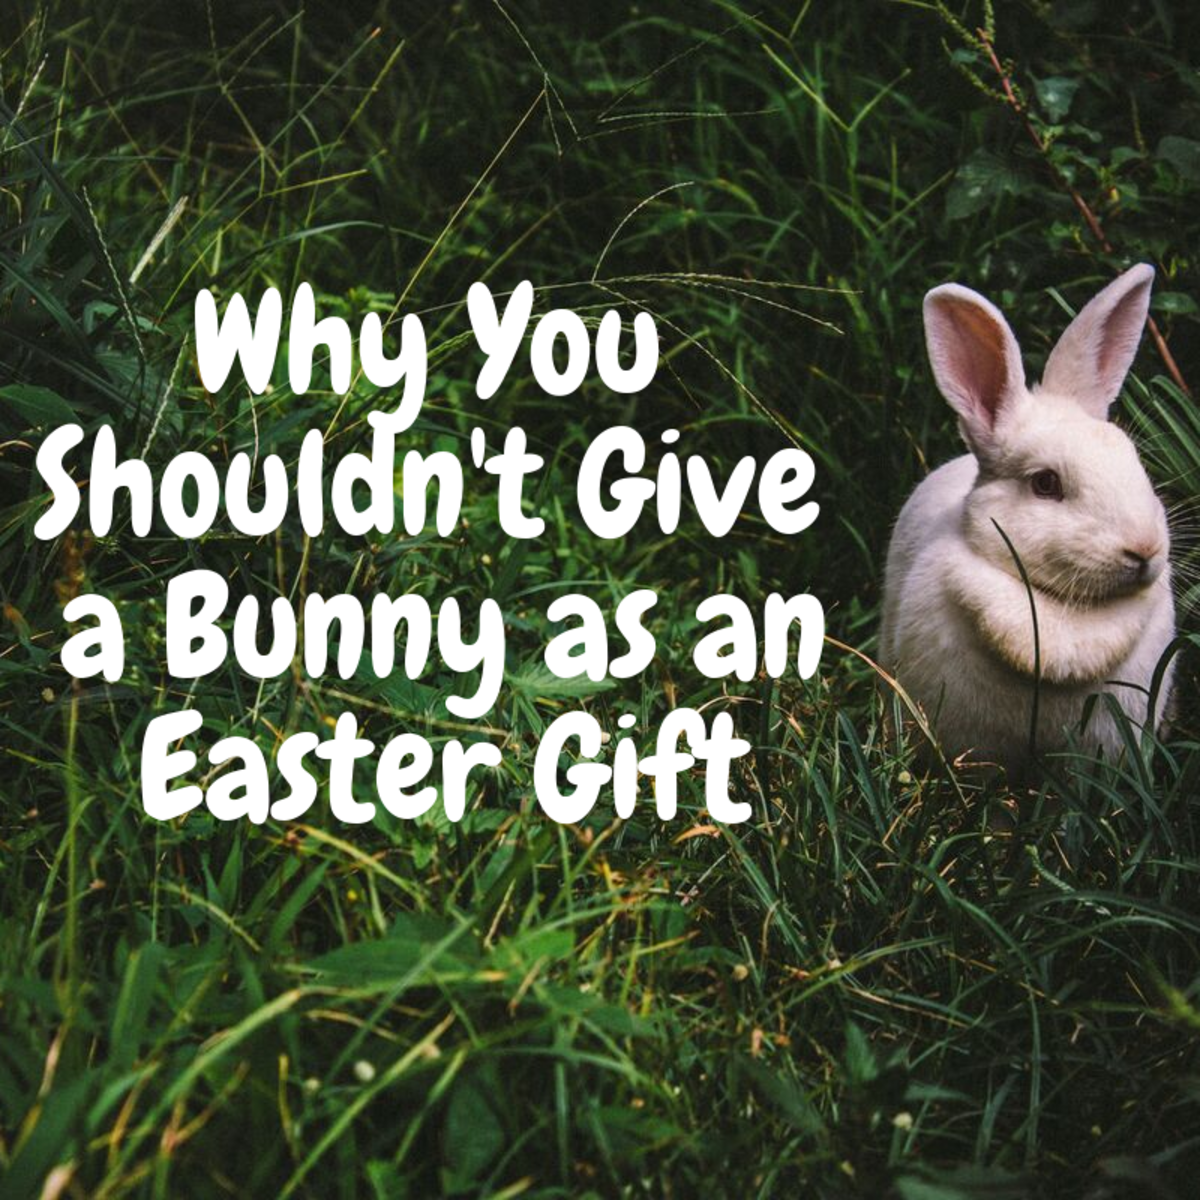 Live animals don't make very good gifts for children, so consider these reasons, this Easter, for why you shouldn't give a child a live rabbit as a gift.